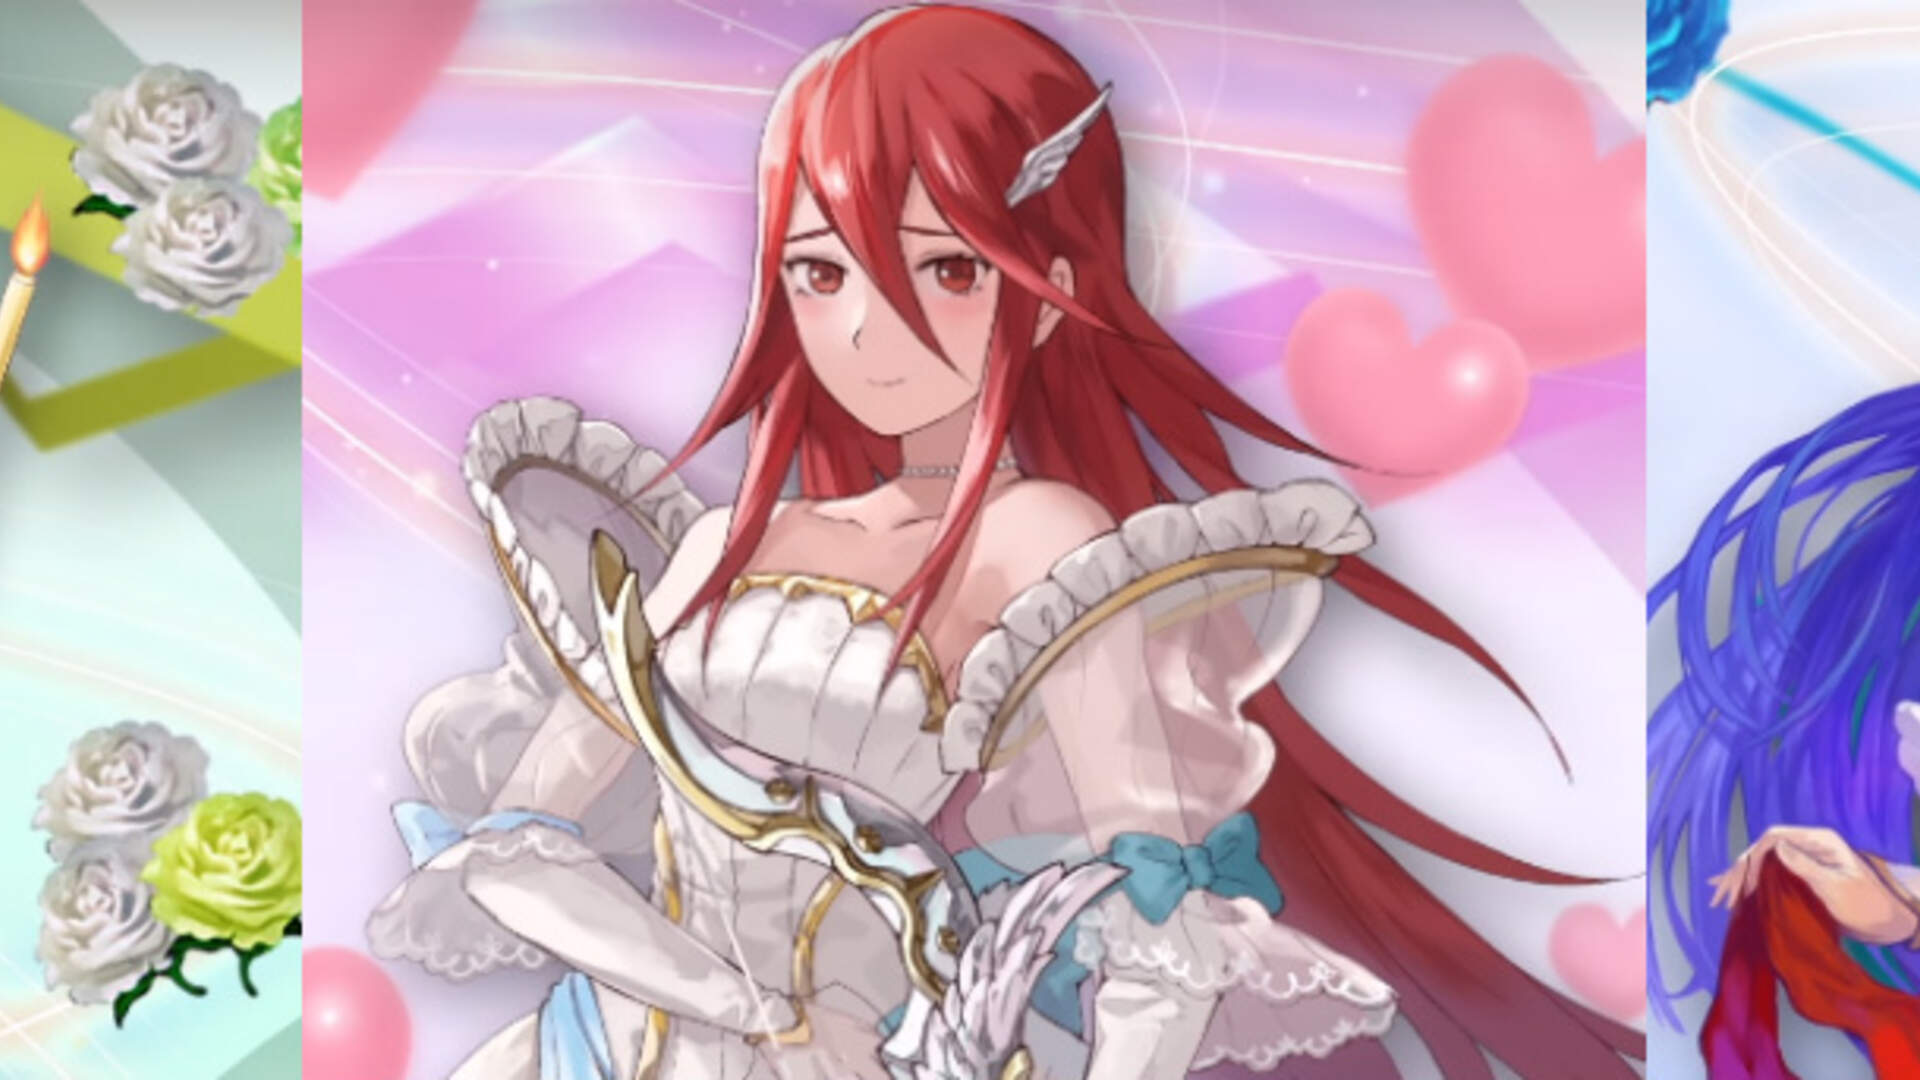 Fire Emblem Heroes Knows Its Audience, Adds Wedding Costumes